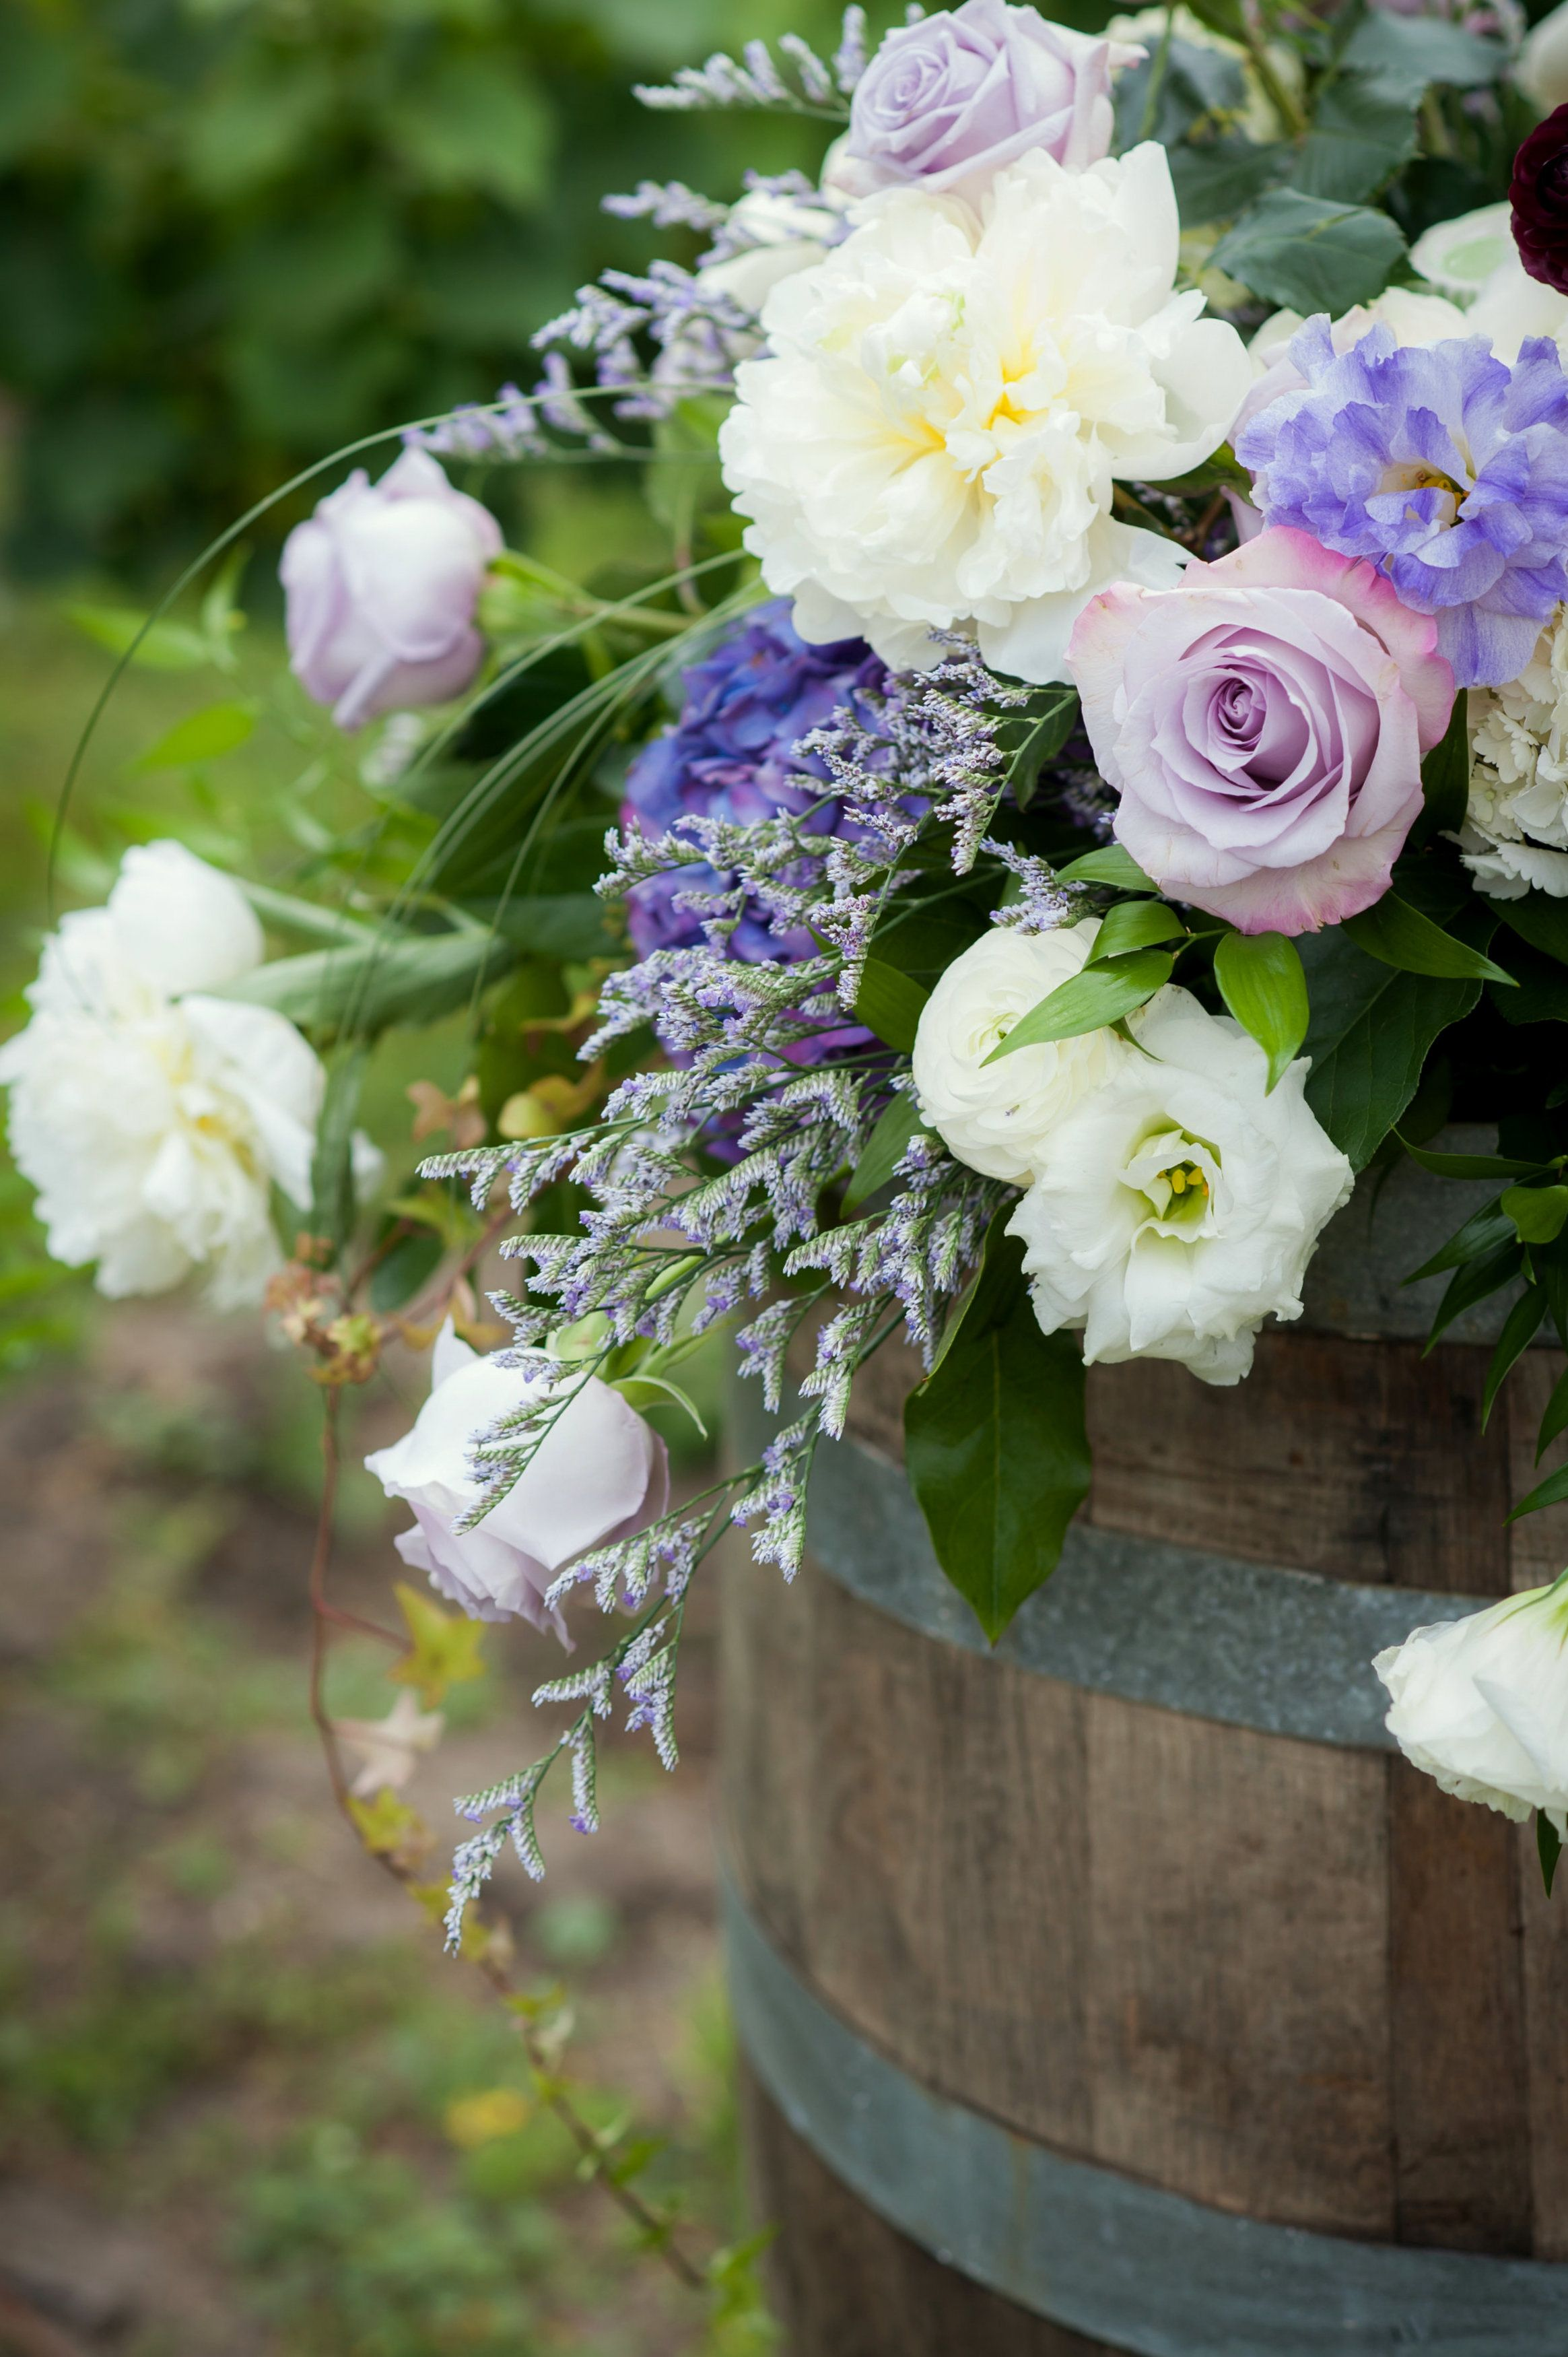 Order Flowers Online With Same Day Delivery From Teboe Florist Fresh And Hand Delivered Right To Your Door